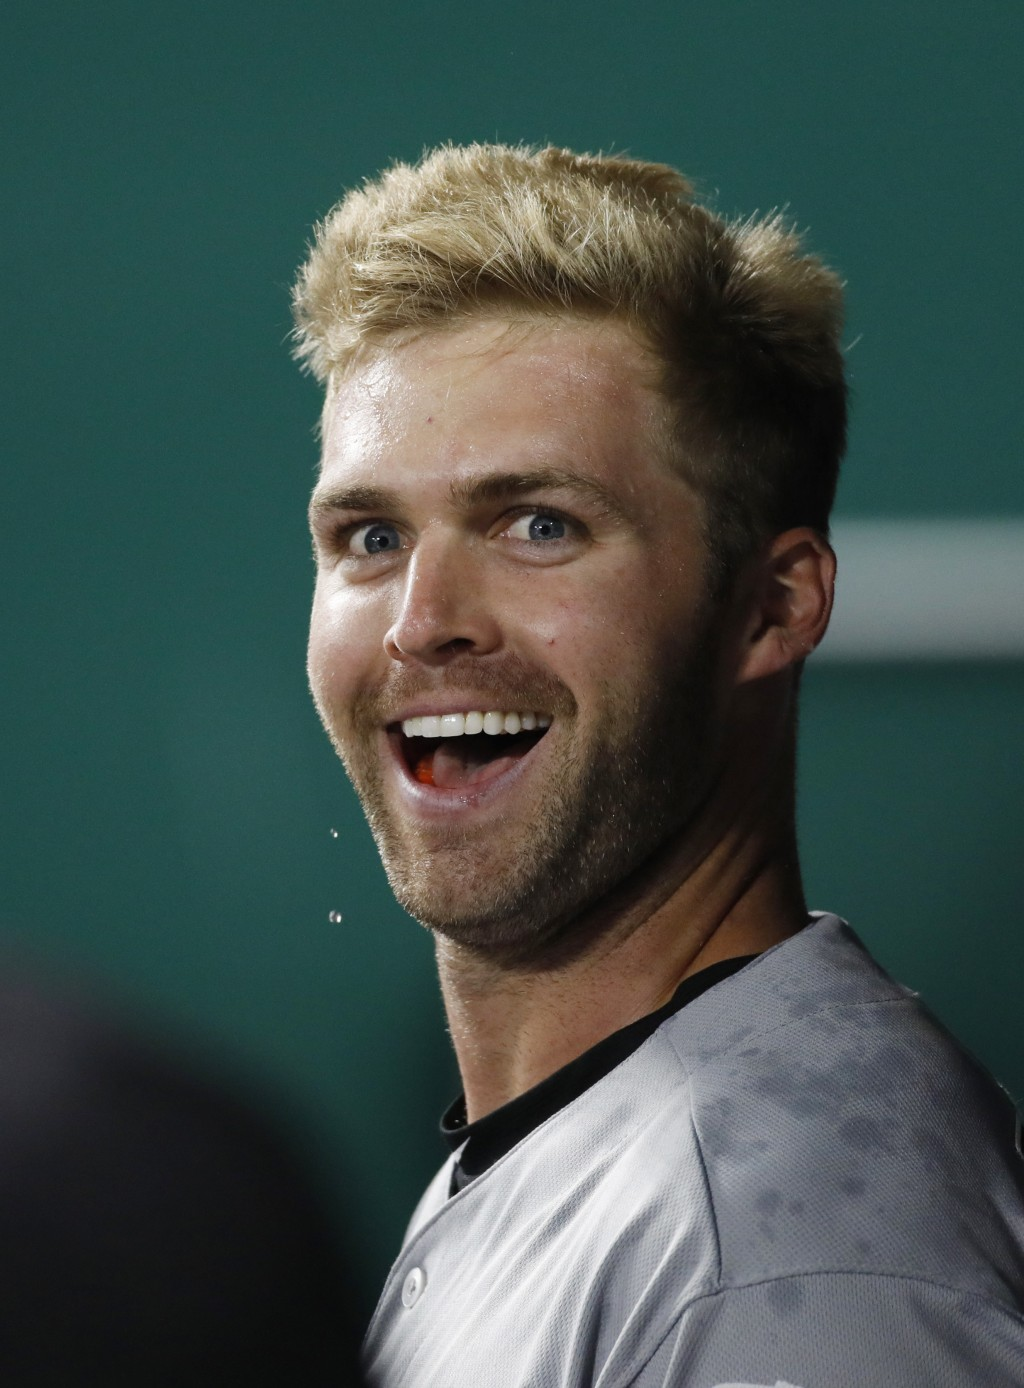 Chicago White Sox designated hitter Matt Davidson celebrates in the dugout after hitting a two-run home run in the 11th inning of a baseball game agai...